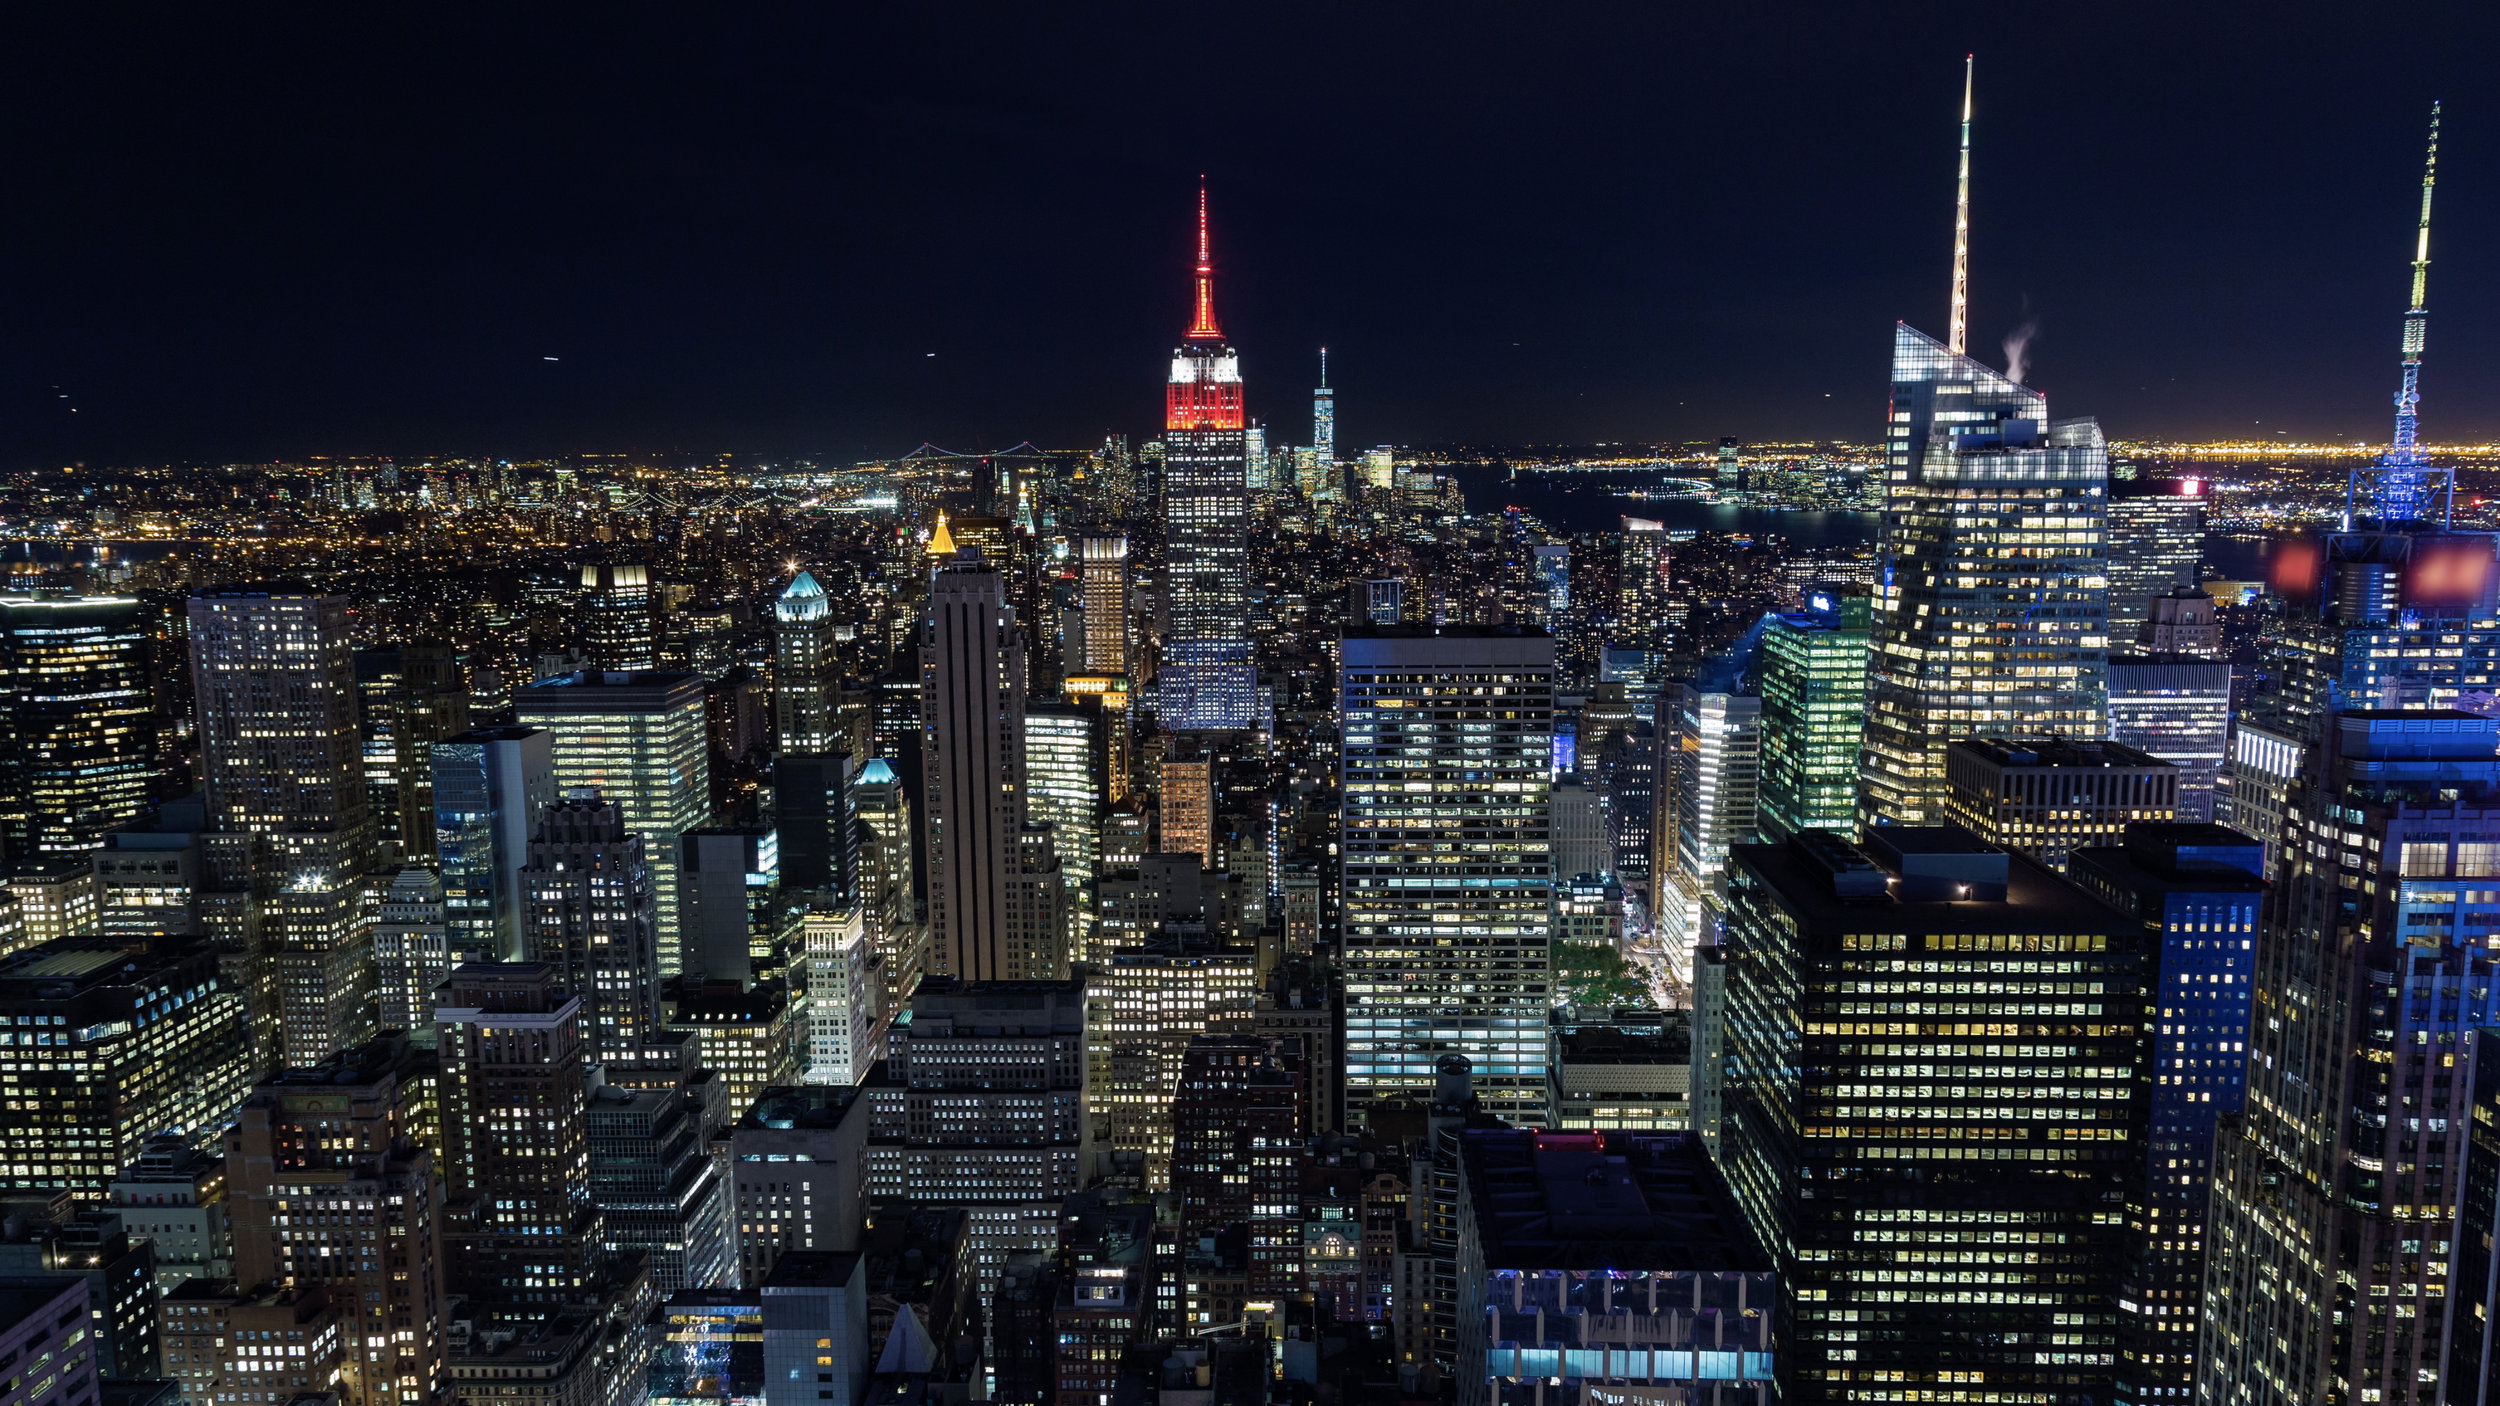 Hd New York City At Night Emeric S Timelapse